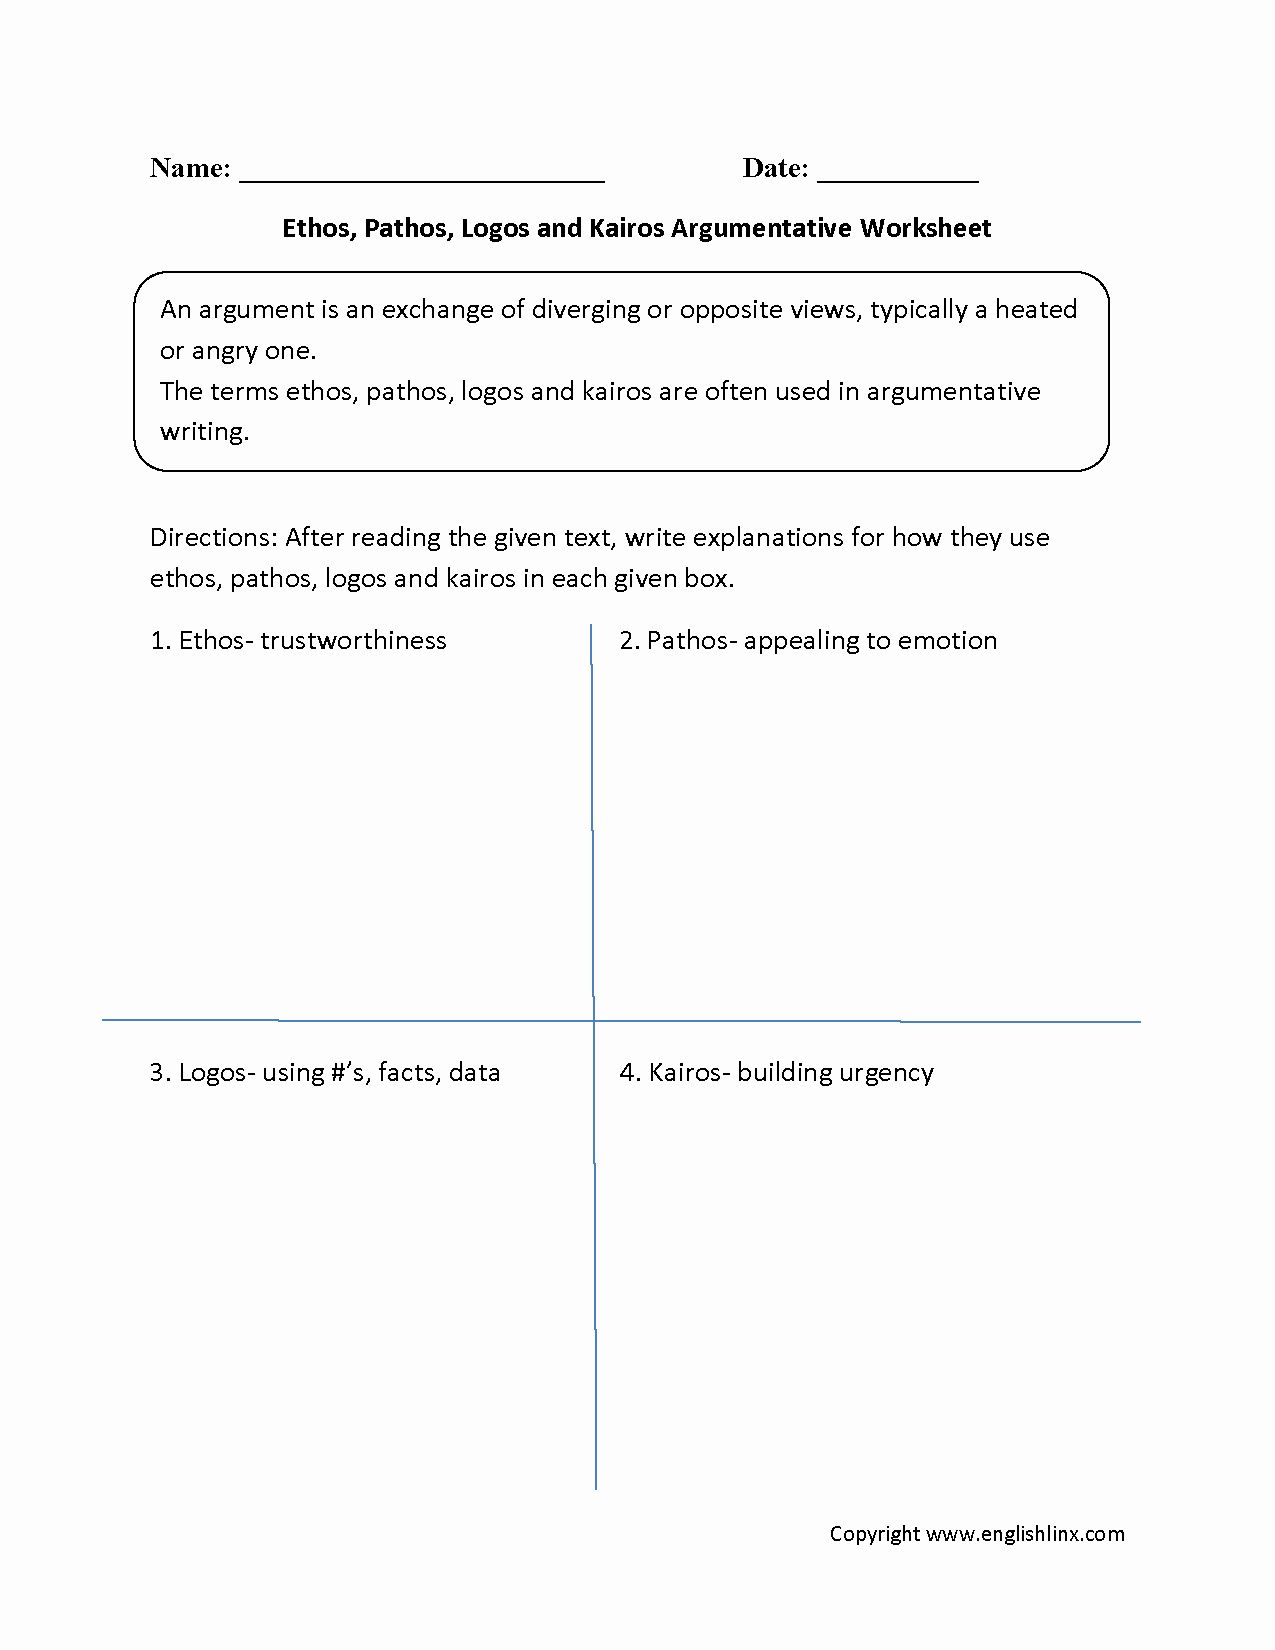 Ethos Pathos Logos Worksheet Answers